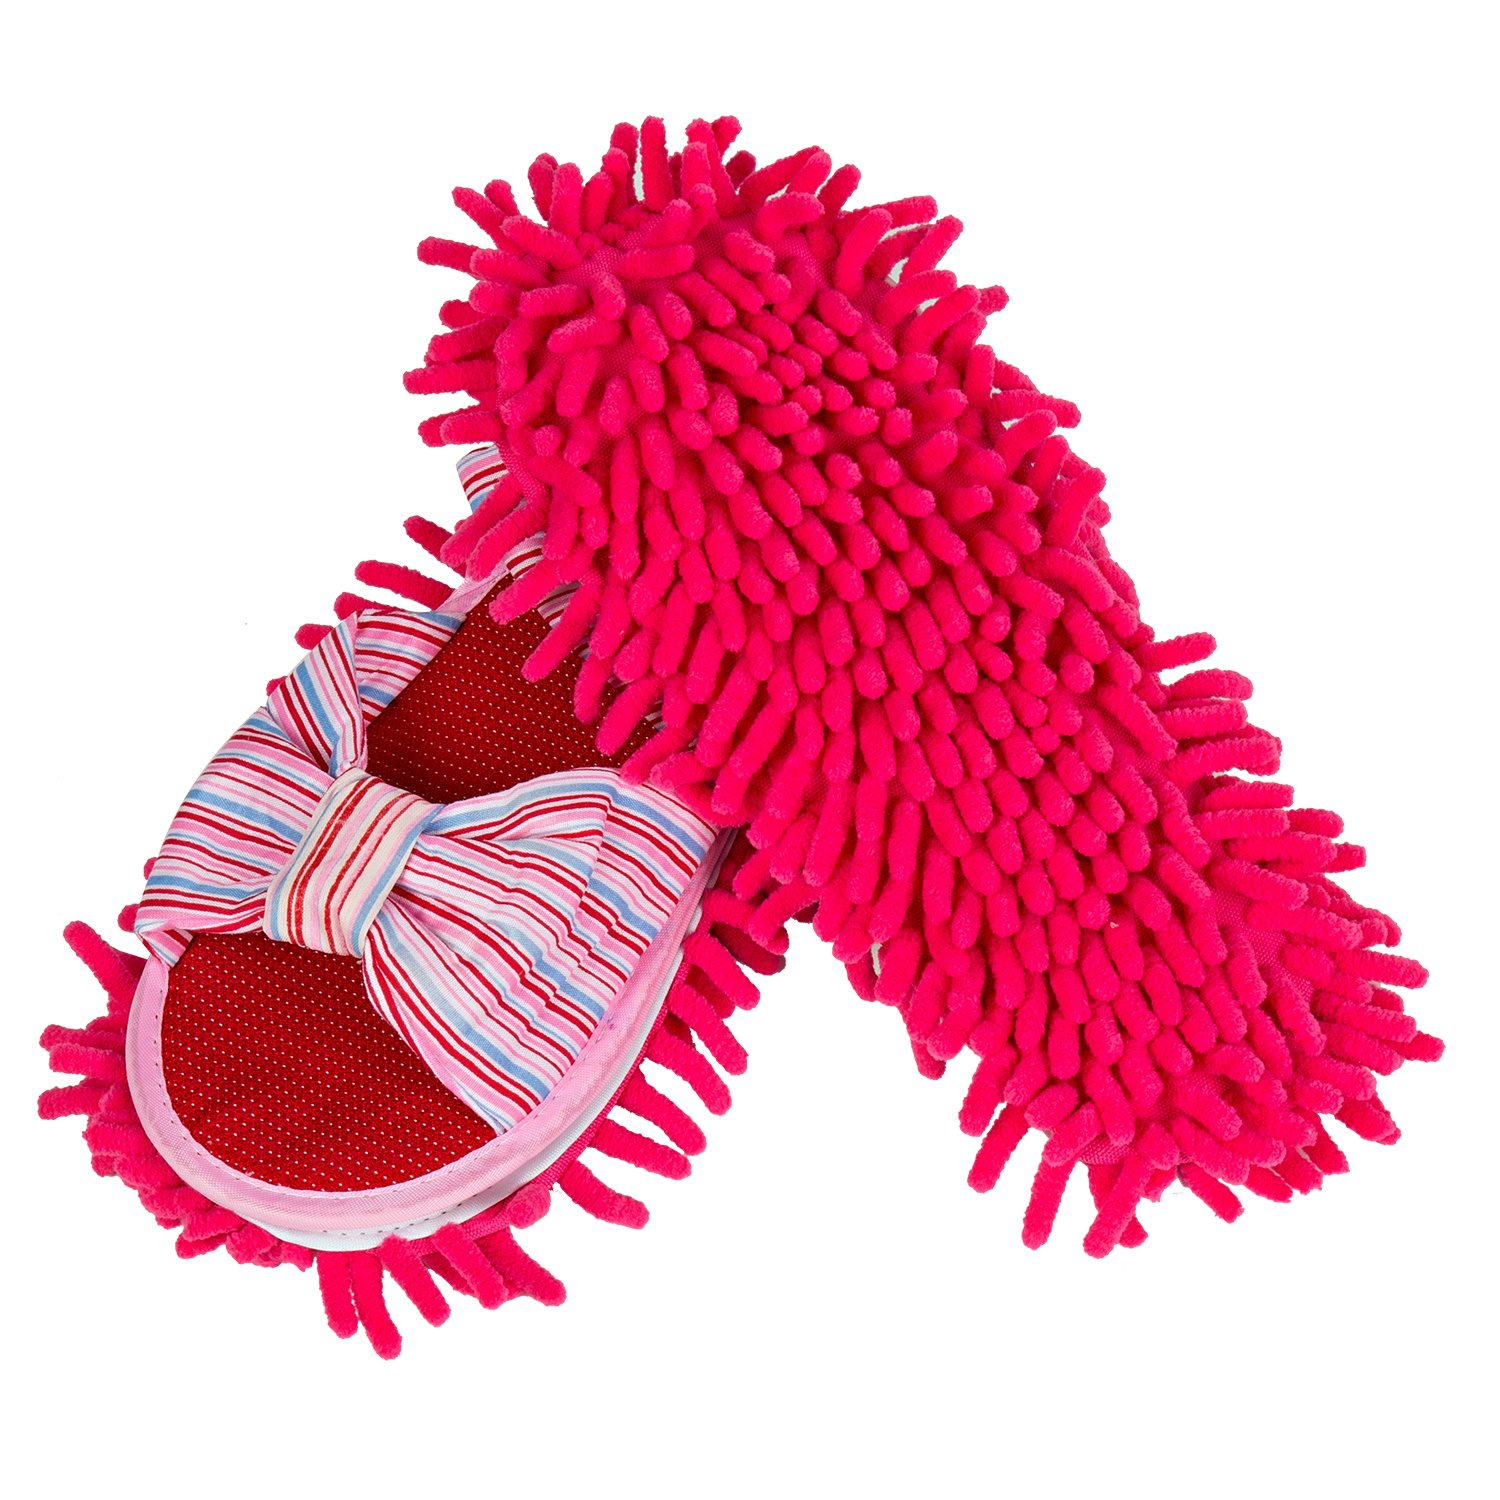 LEMNUY Duster Mop Slippers - House Dust Polishing Floor Cleaning, Chenille Microfiber Cover, Genie Multi - Surface Cleaner, Kitchen Clean Tool, Assorted Colors - Women Large Size 7-10, 1 Pair